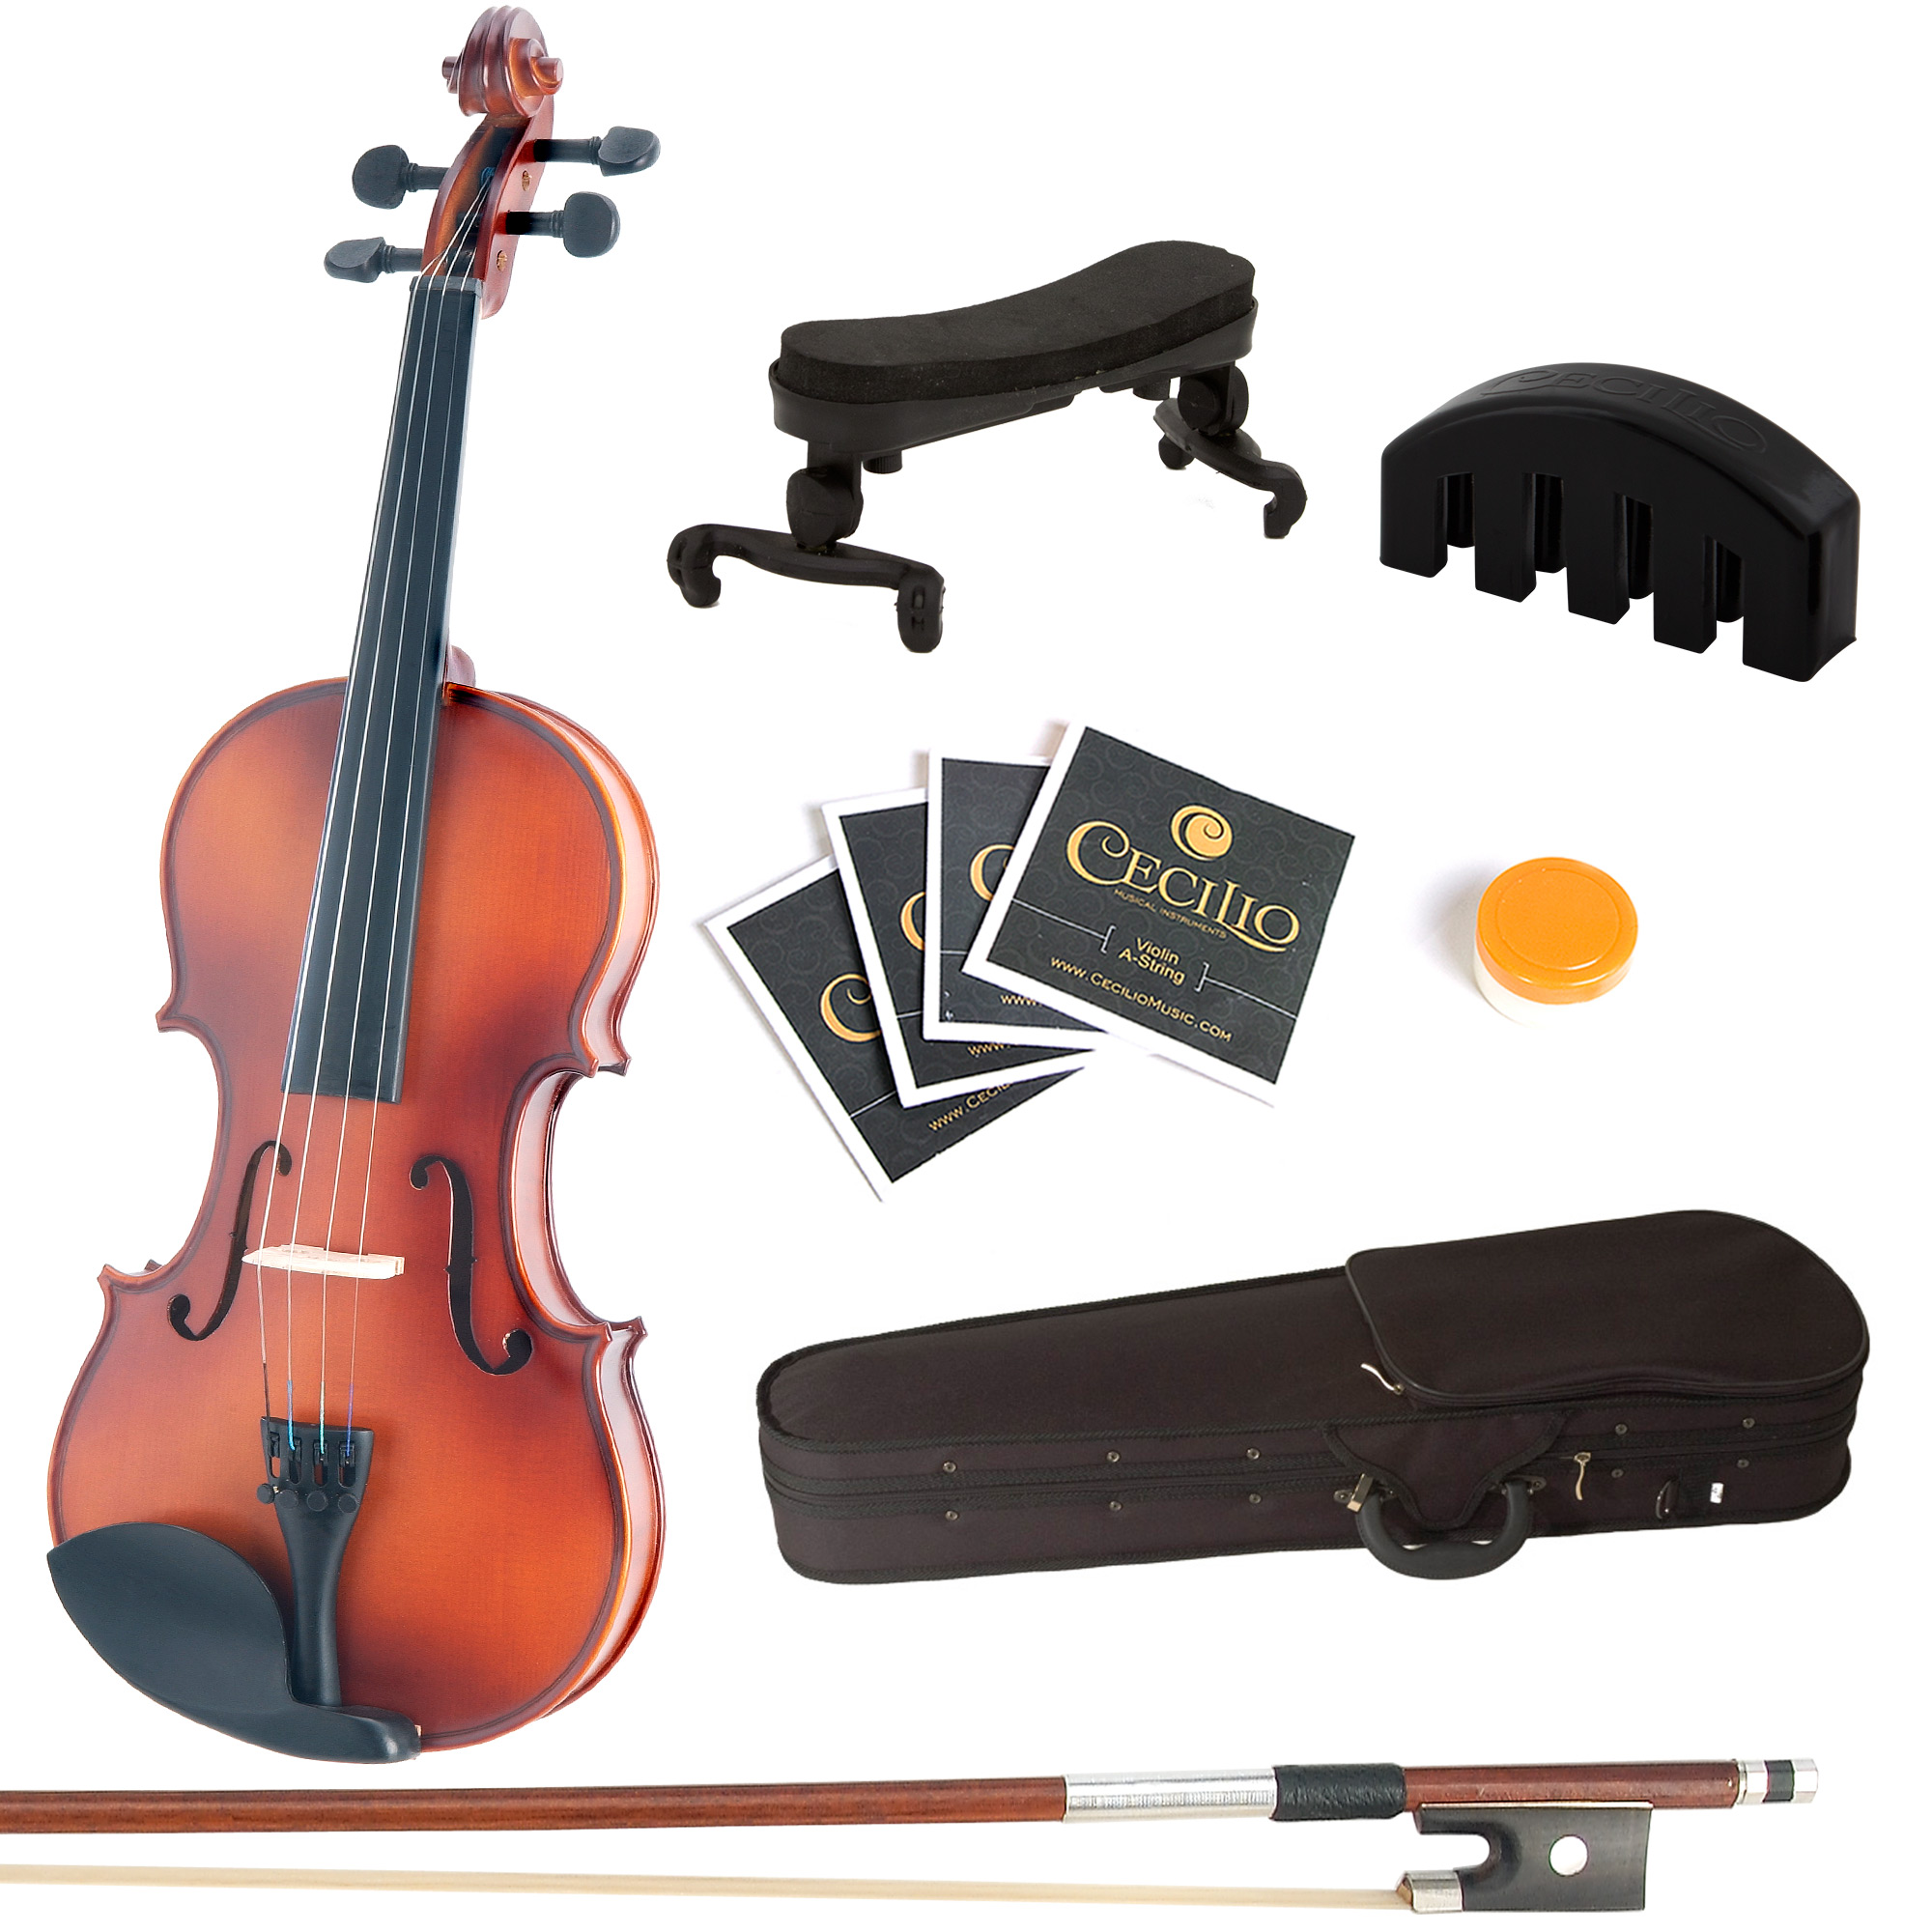 Mendini by Cecilio Size 1 2 MV300 Solid Wood Violin w  Shoulder Rest, Extra Strings, Bow,... by Cecilio Musical Instruments